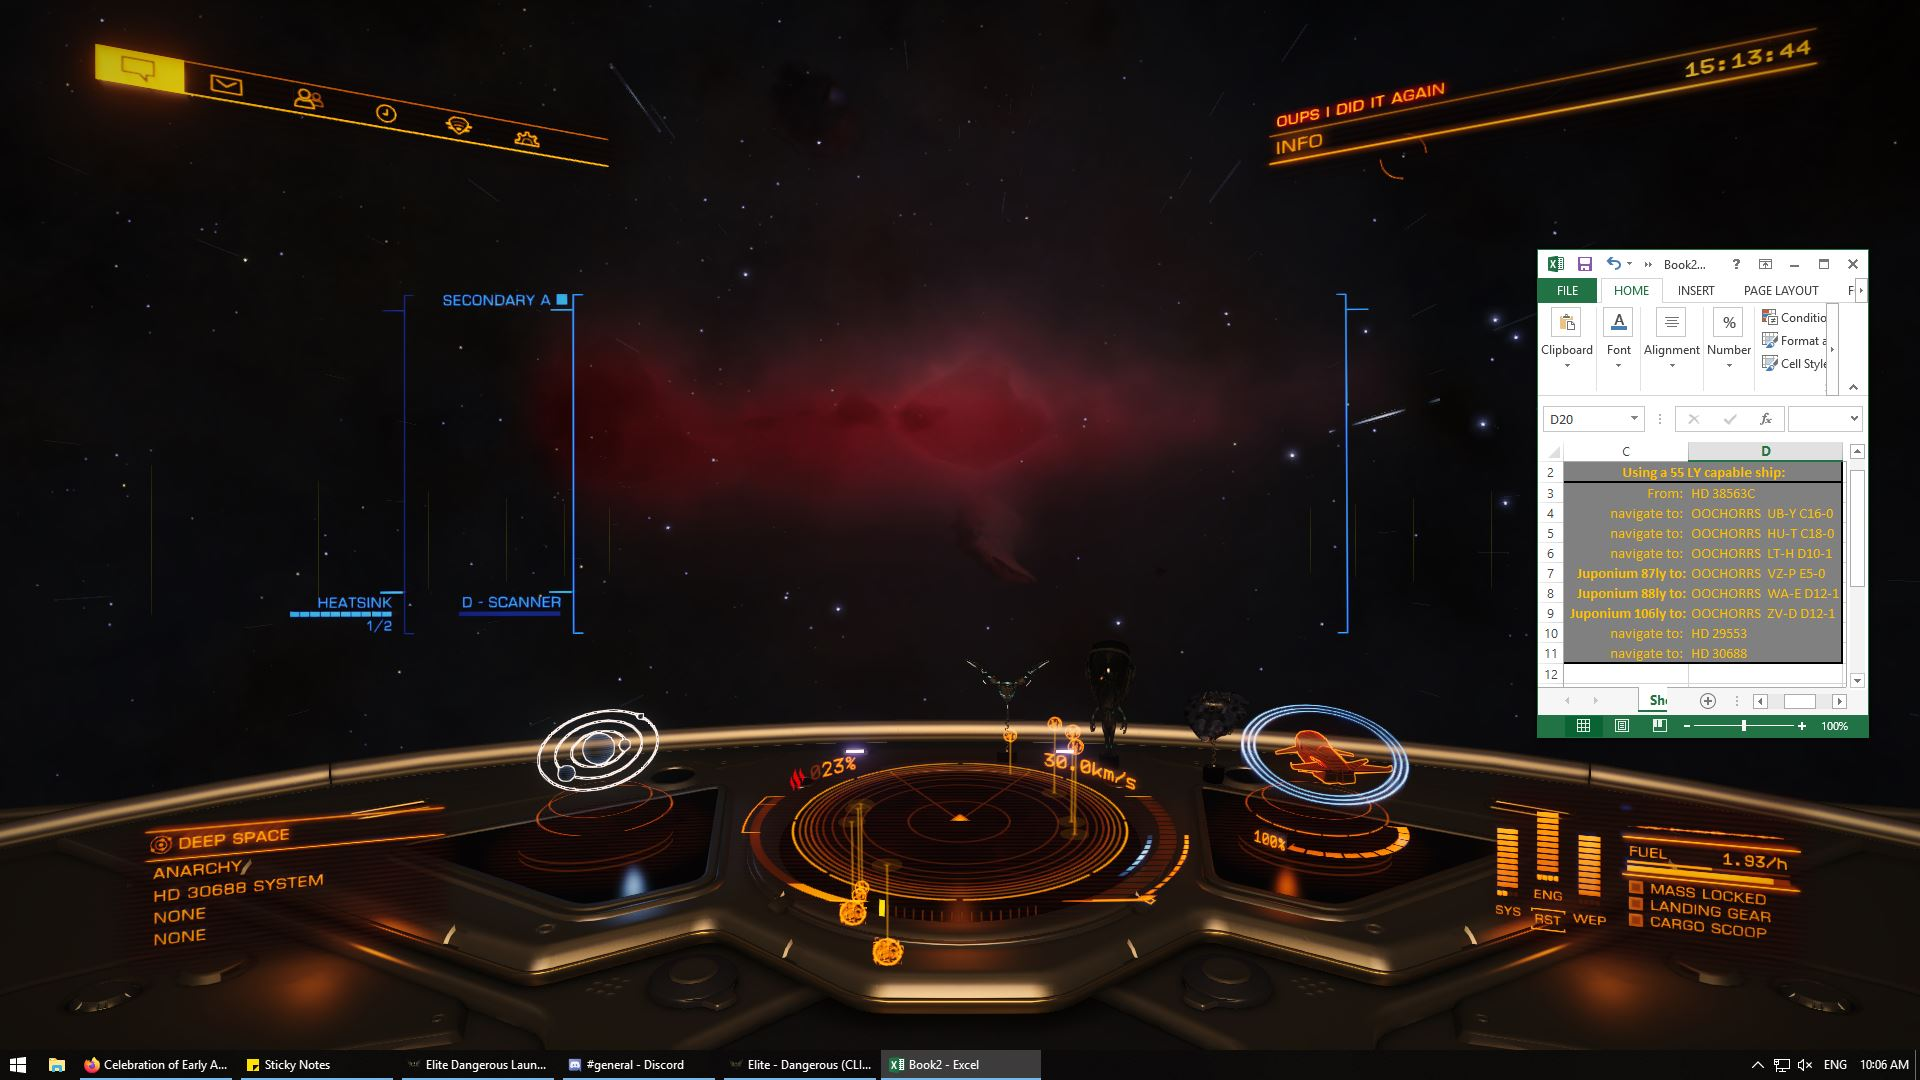 route to hd30688_55ly.JPG